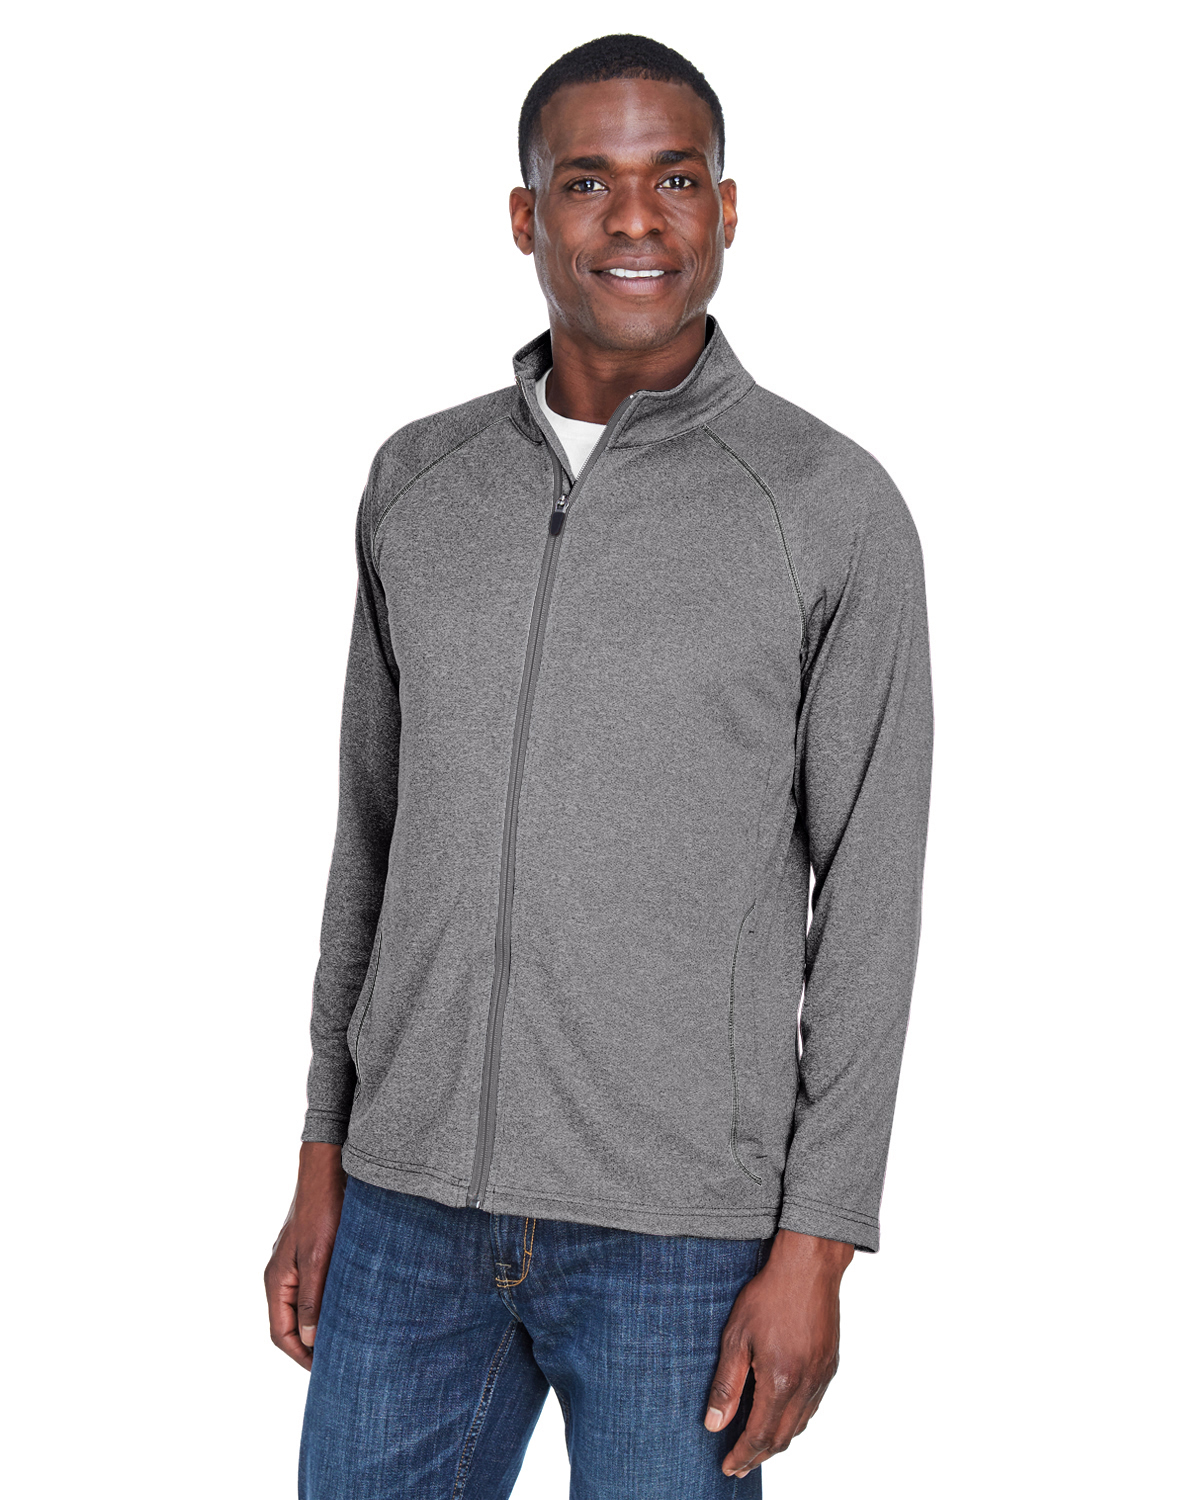 4XL DG420 Devon /& Jones Mens Stretch Tech-Shell Compass Full-Zip - Dark Grey Heather